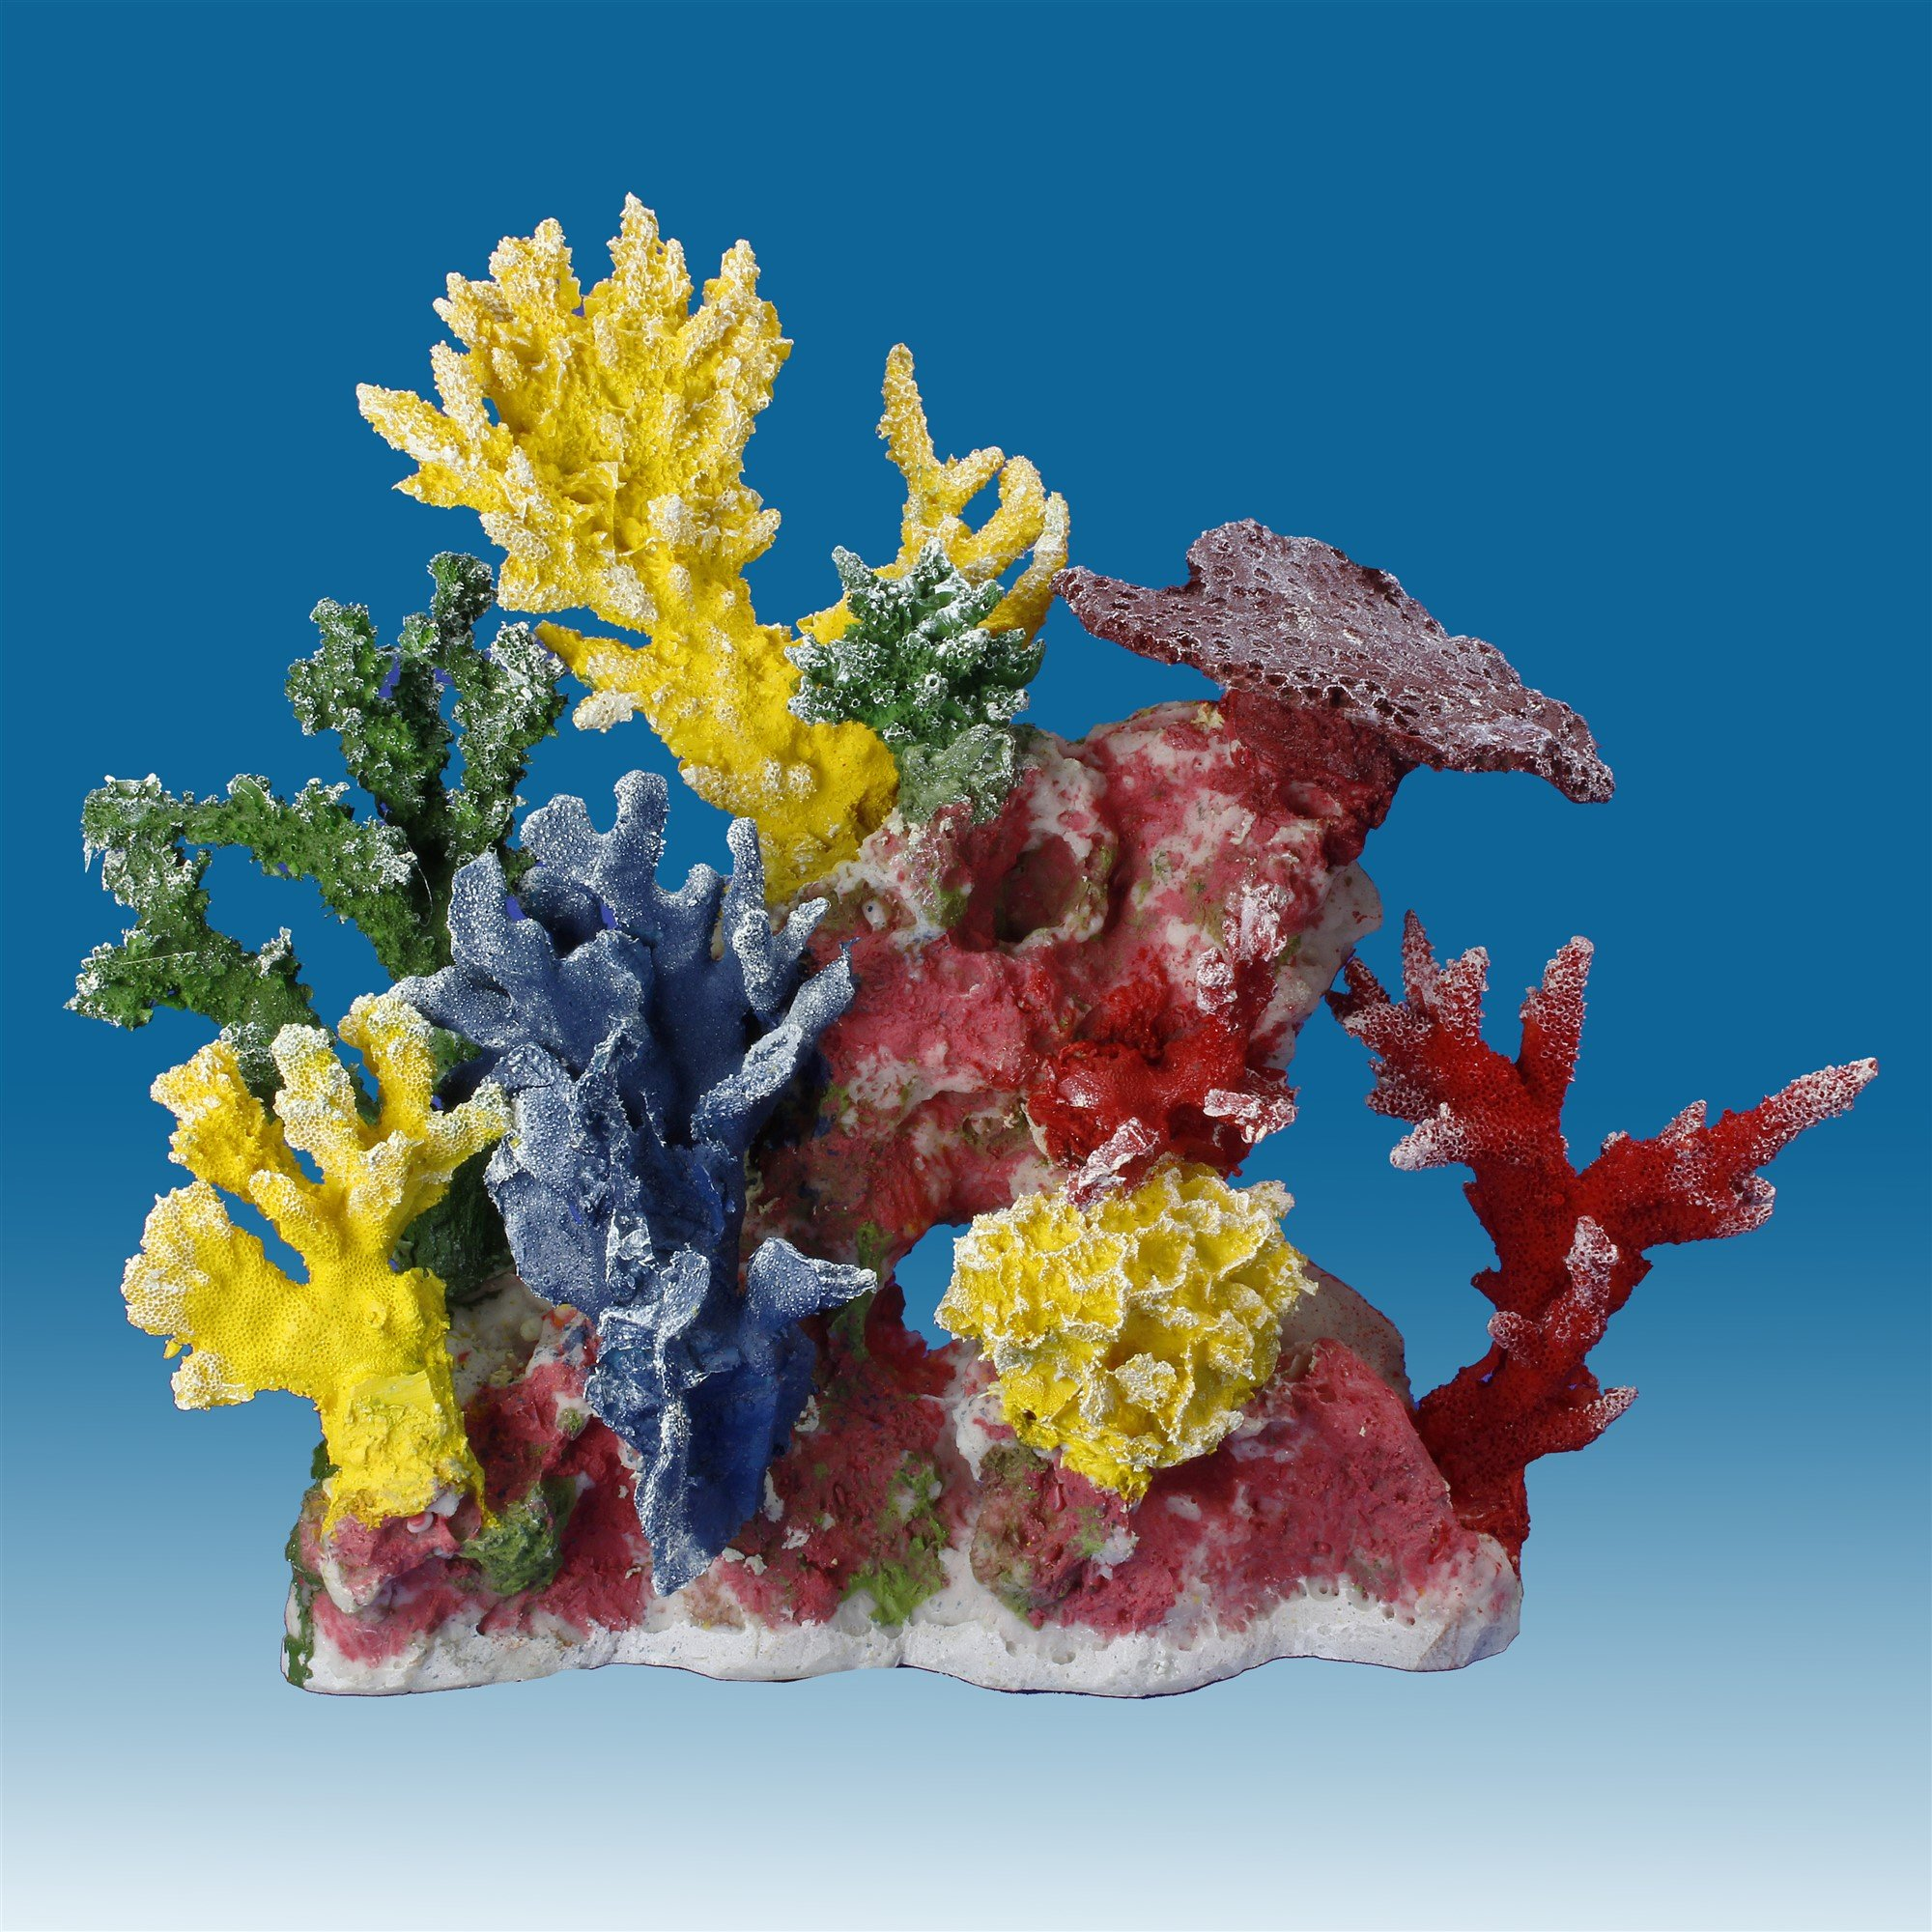 Instant Reef DM055 Fish Tank Decorations, Aquarium Décor Ornament, Fake Coral Reef Tank for Saltwater Marine and Freshwater Fish